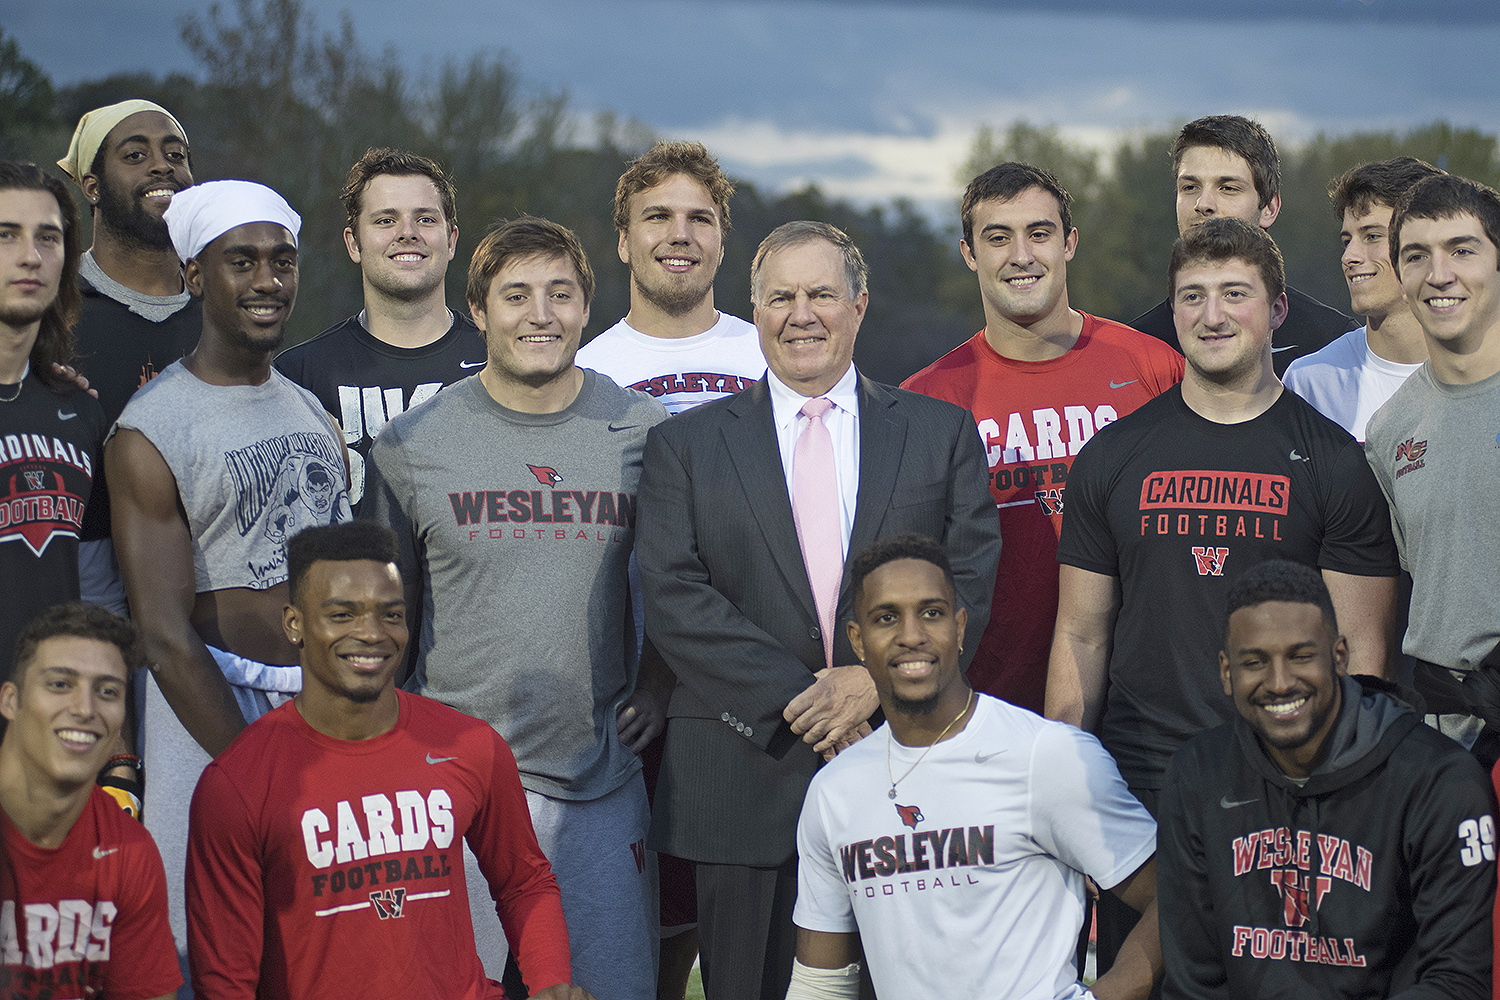 New England Patriots Head Coach Bill Belichick '75 met with members of the Wesleyan football team during the dedication of Belichick Plaza on Nov. 3.